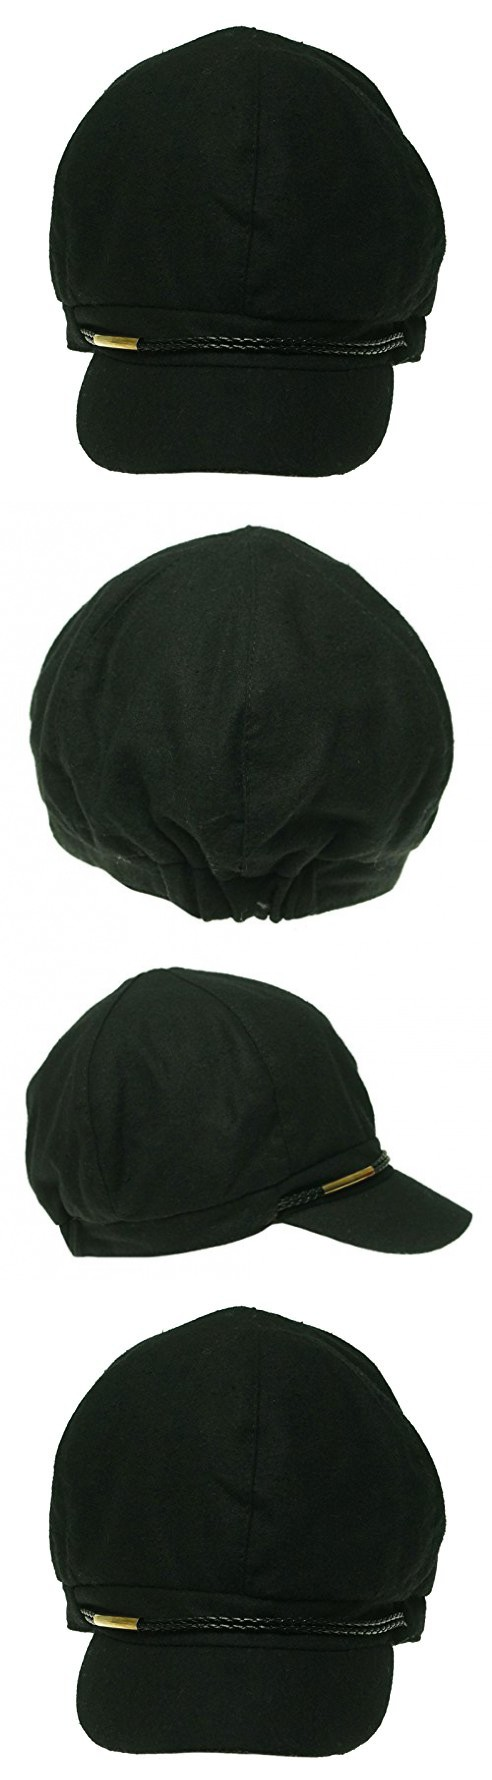 8951aa767ea64 Nine West Women s Wool Blend Newsboy Cap One Size Black